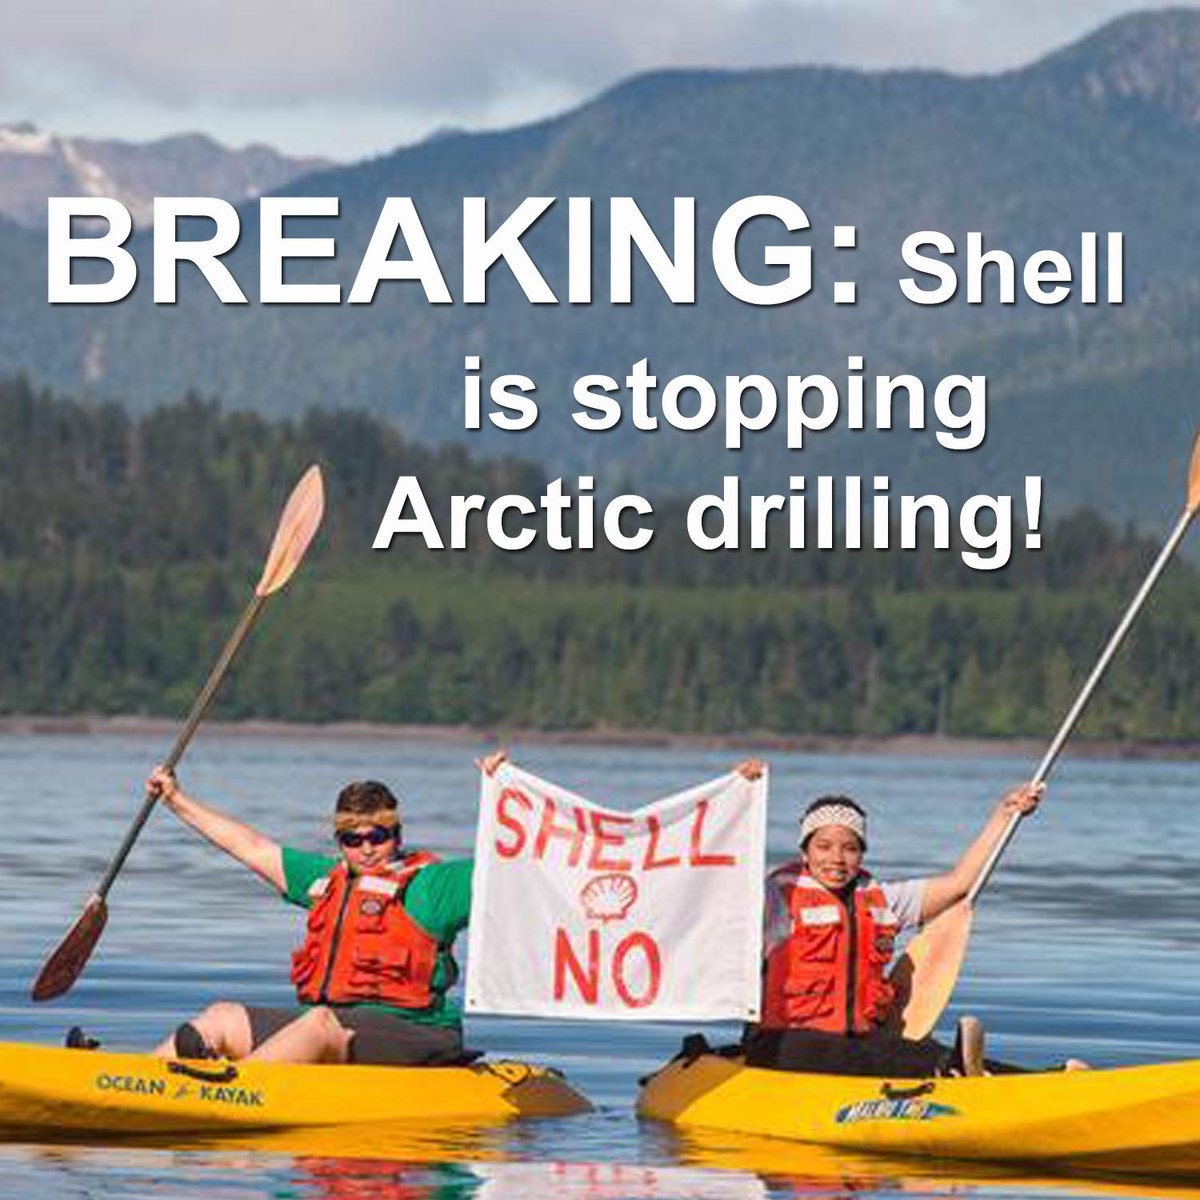 RT @GreenpeaceCA: BREAKING: Shell is ceasing Arctic drilling! http://t.co/YGwgyTrpWU #ShellNo #savethearctic http://t.co/nGTorv6RdL